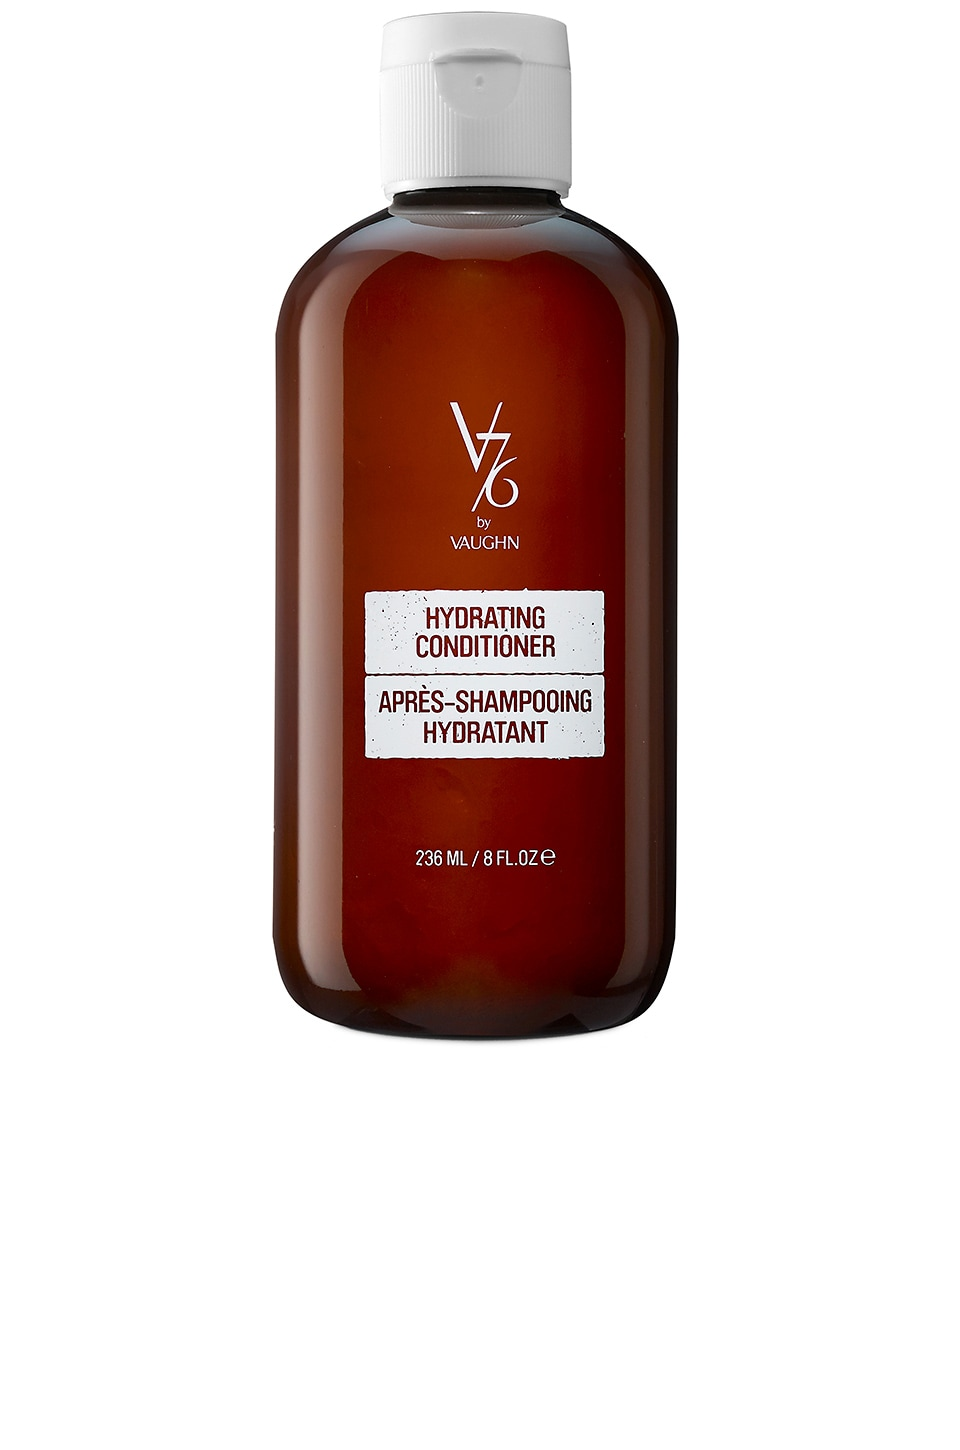 V76 by Vaughn Hydrating Conditioner in All